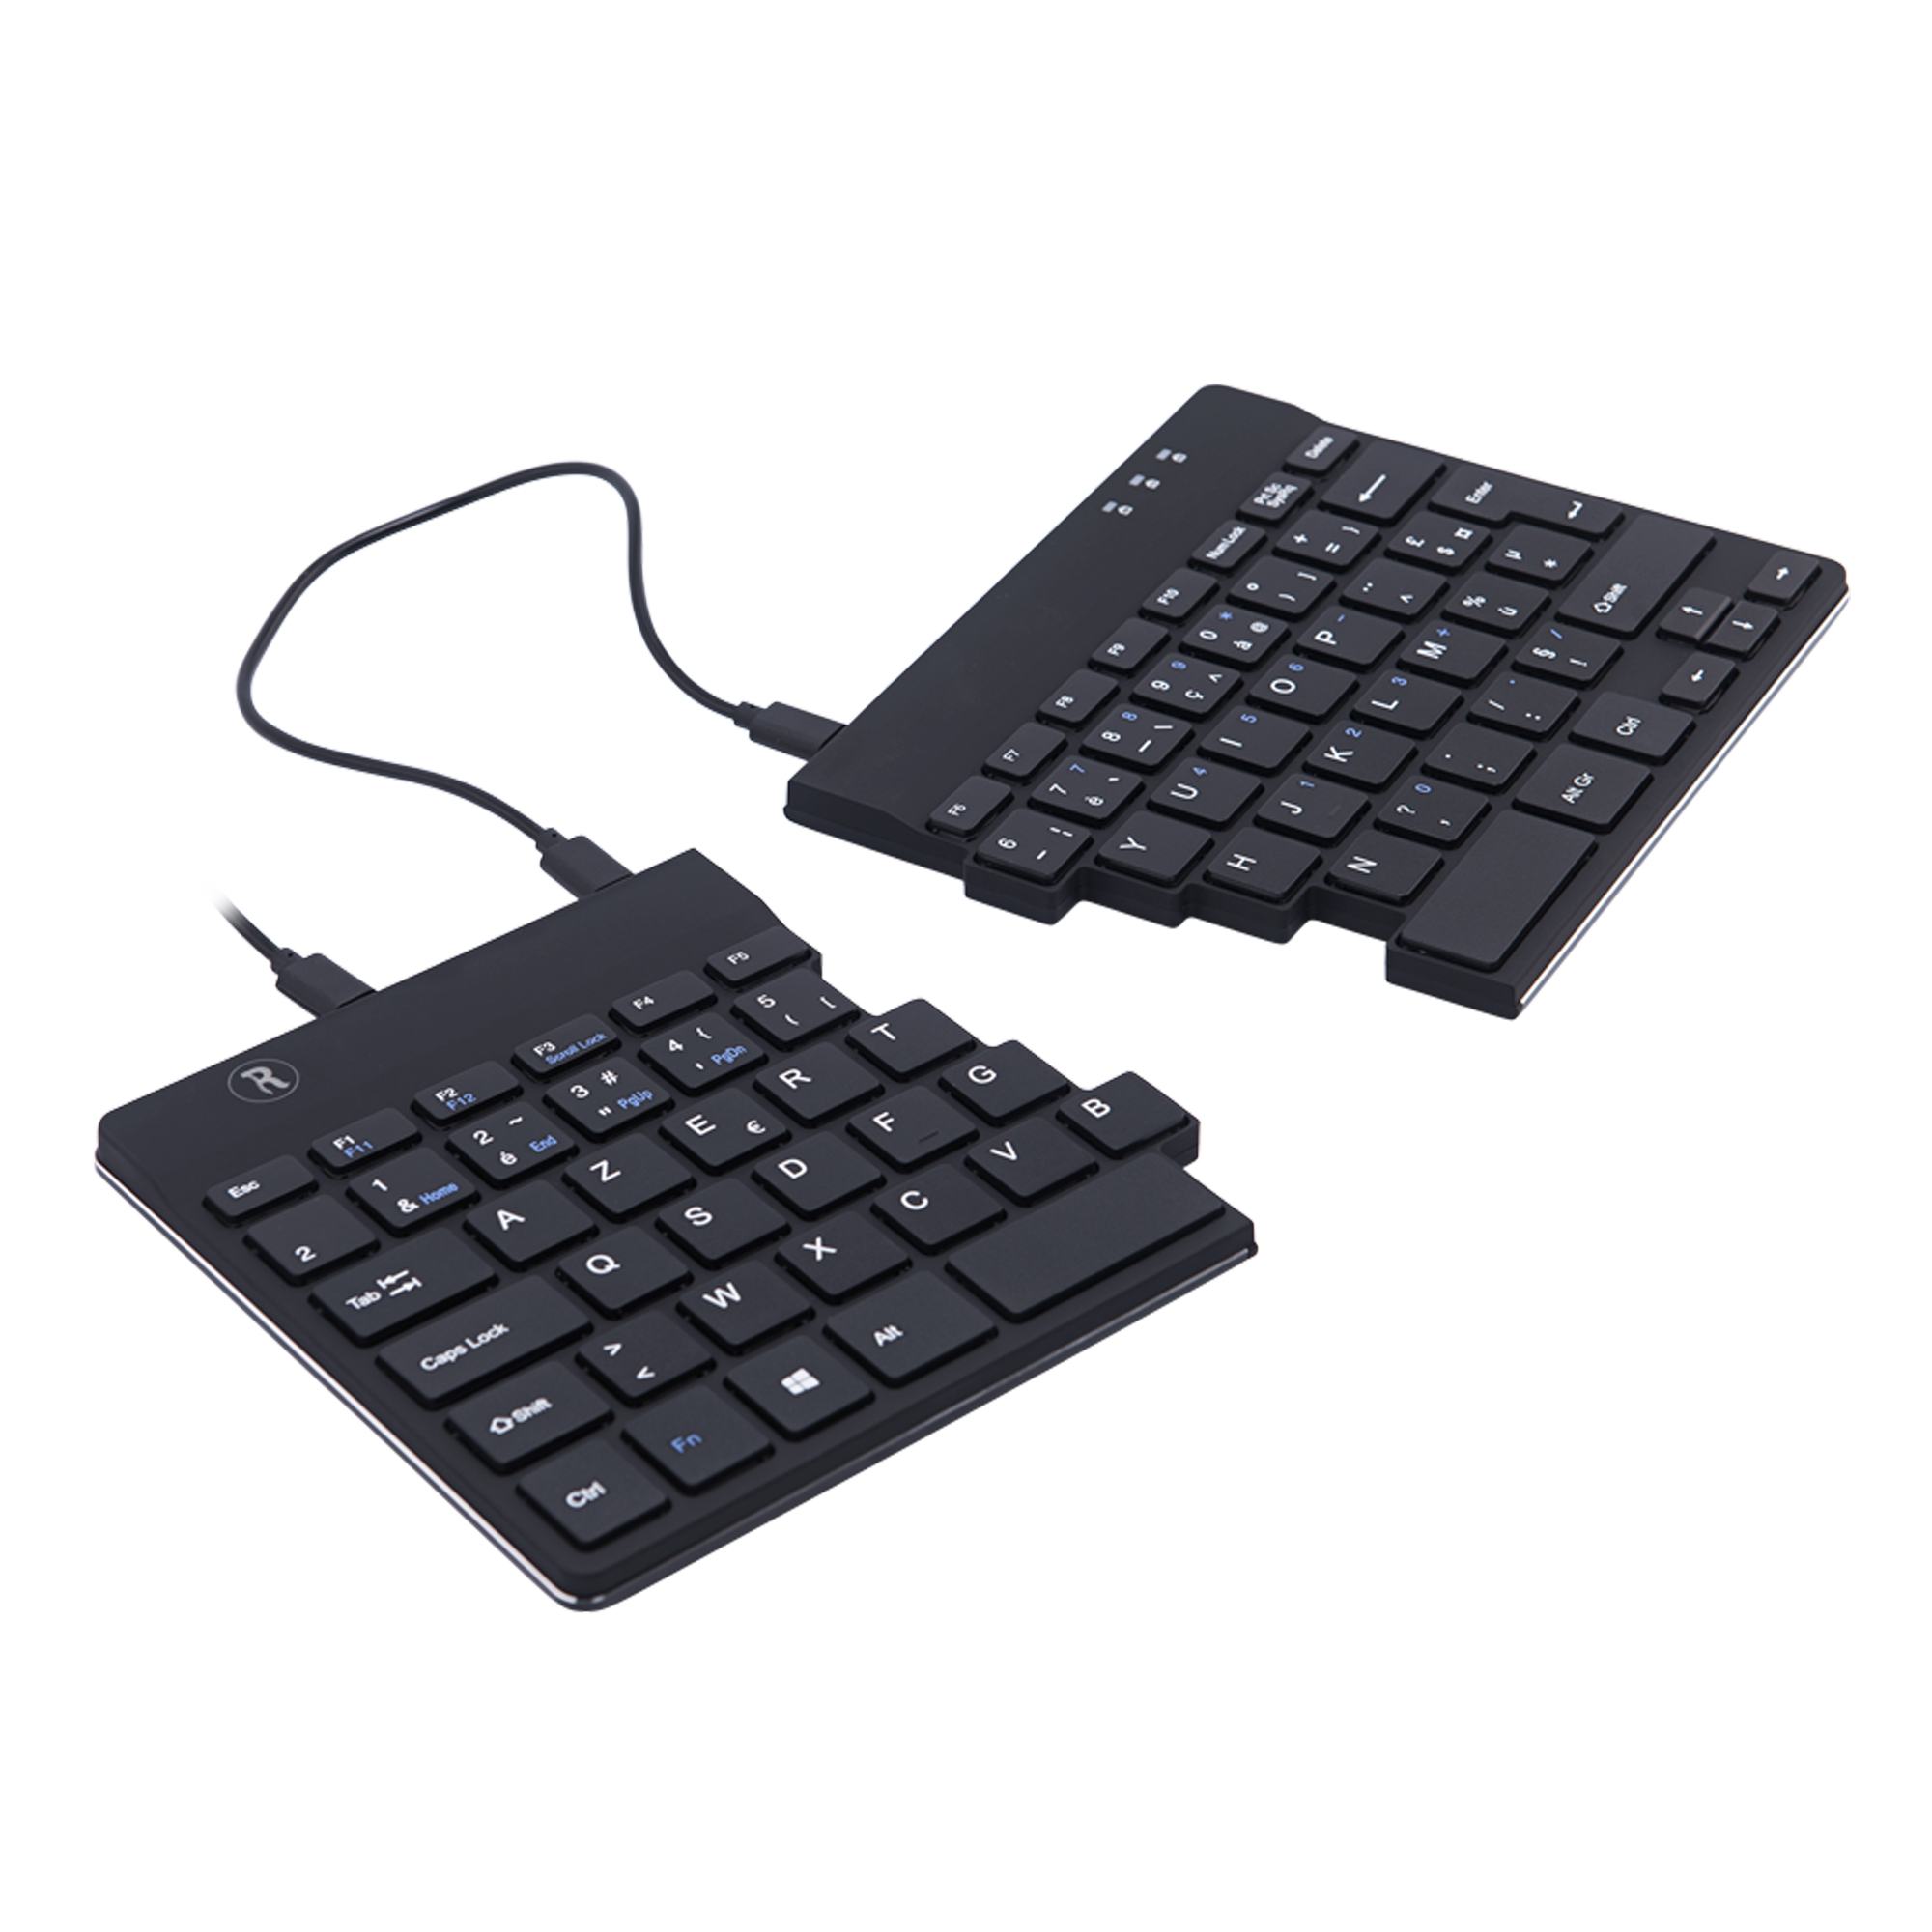 R-Go Split Break Ergonomic Keyboard, AZERTY (FR), black, wired - 4